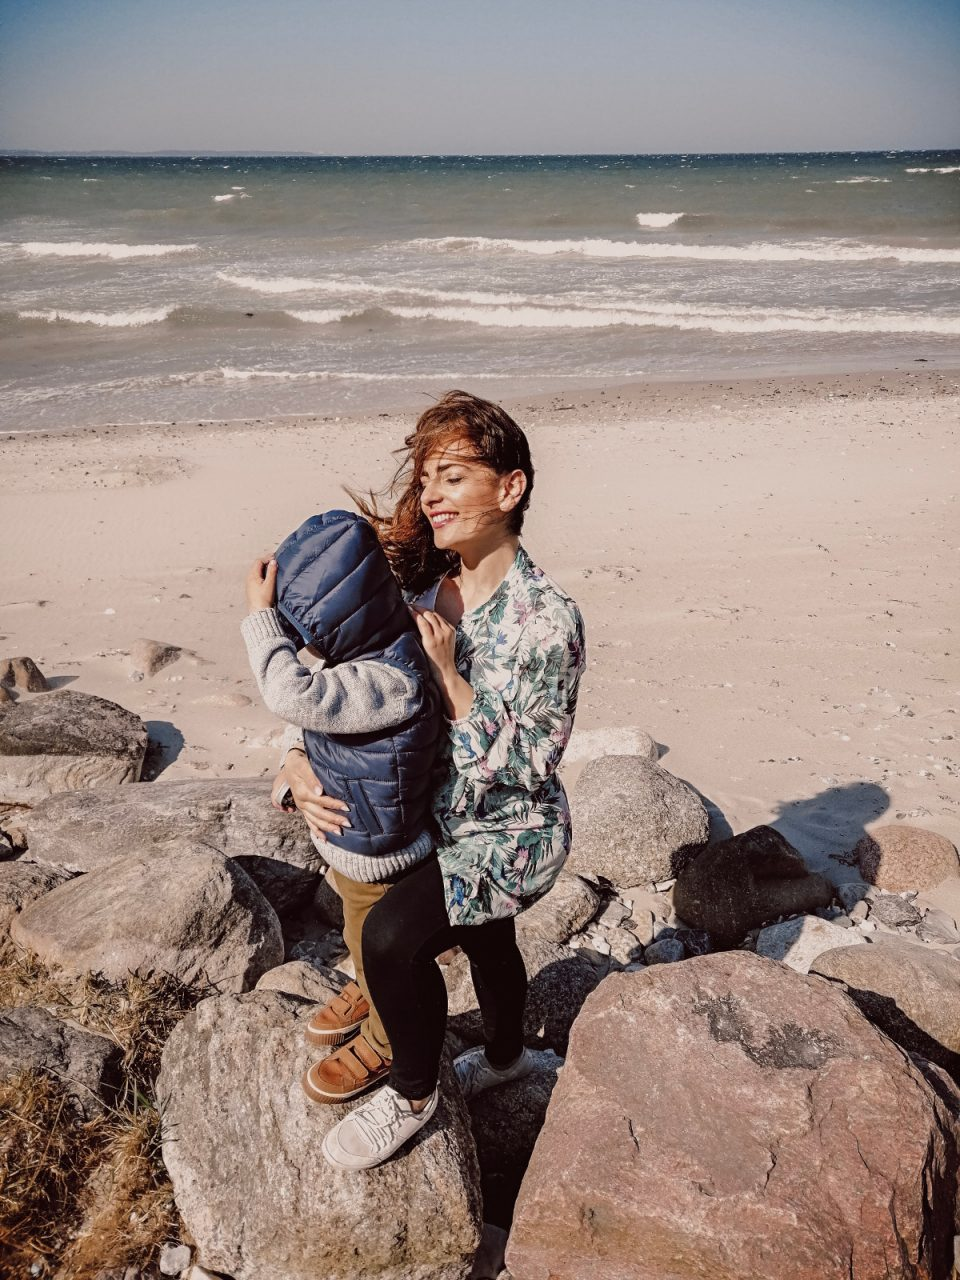 mamablog-momblogger-deutscher-blog-strand-mutter-kind-kiel